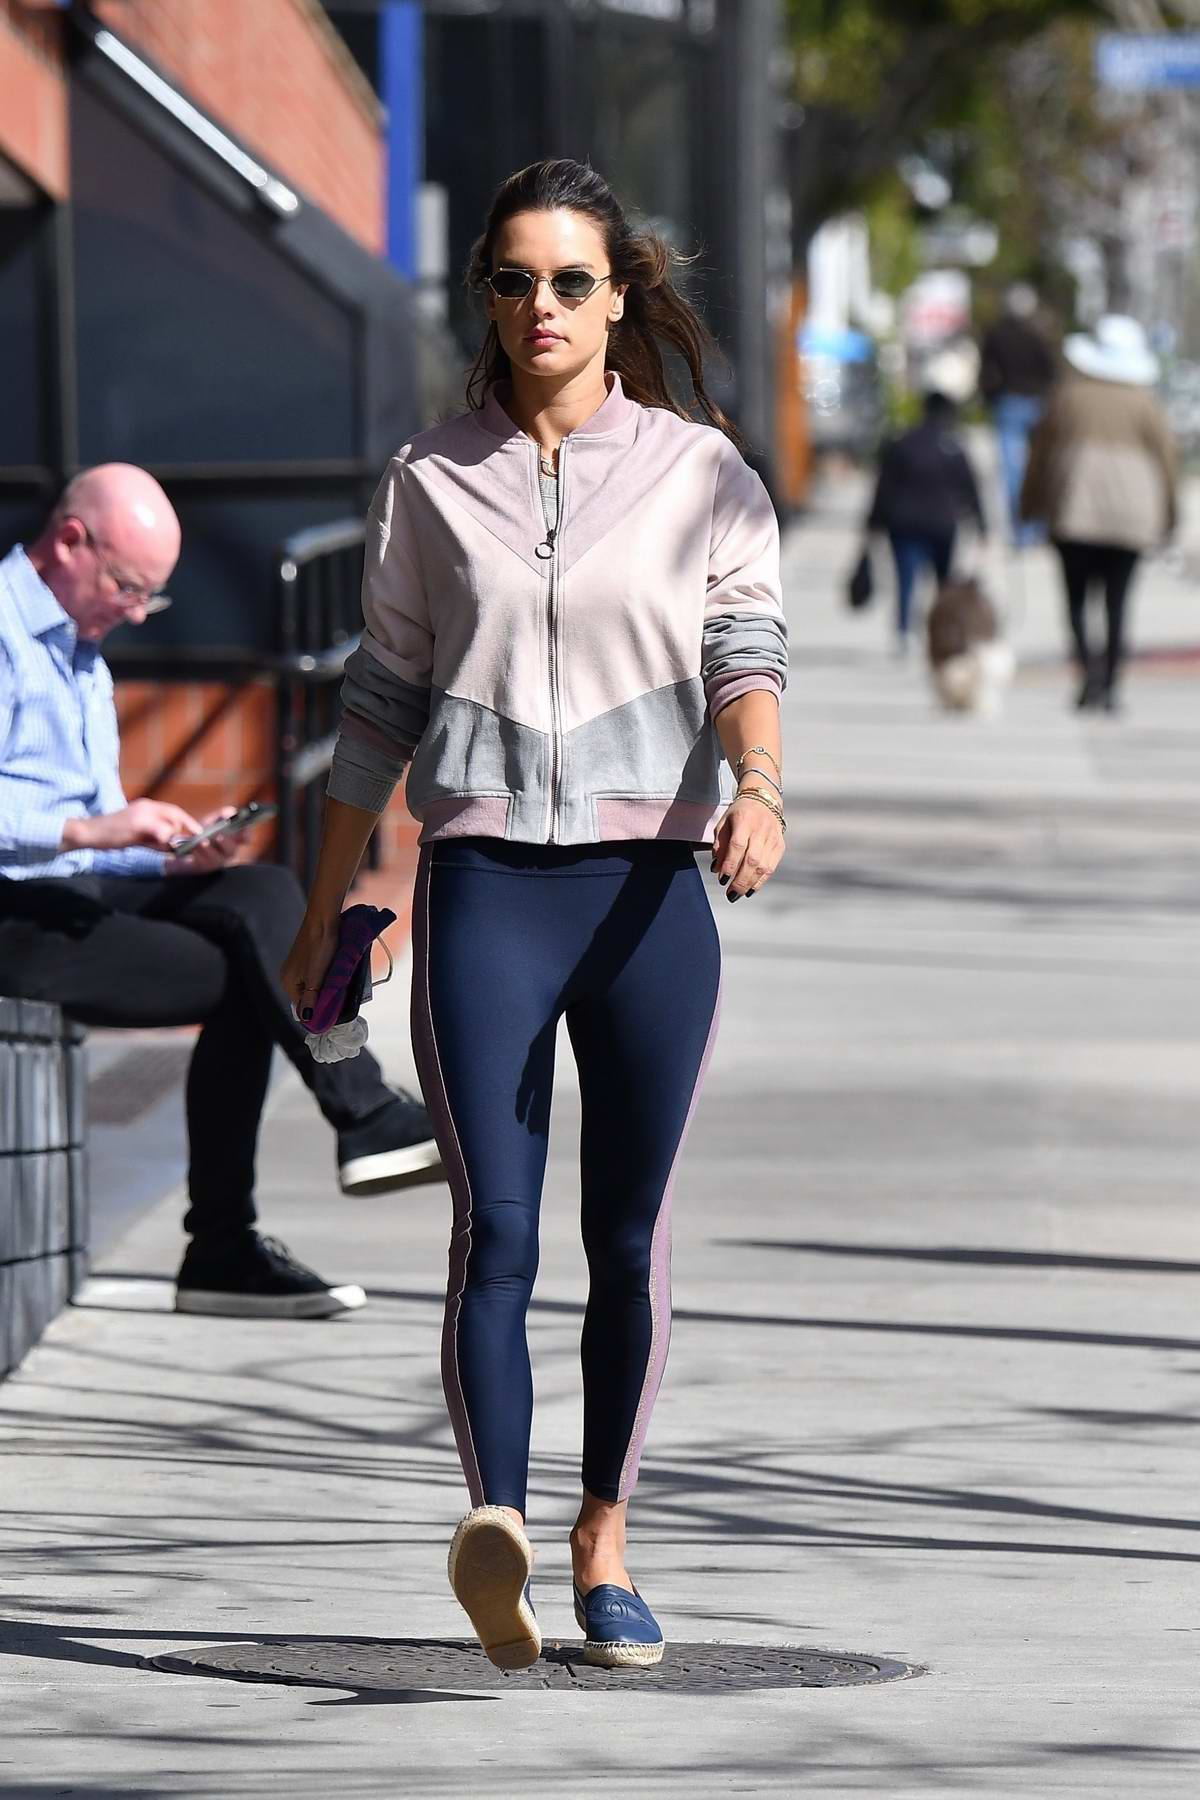 Alessandra Ambrosio hits the gym and later stops to grab a salad and a cold drink in Santa Monica, California